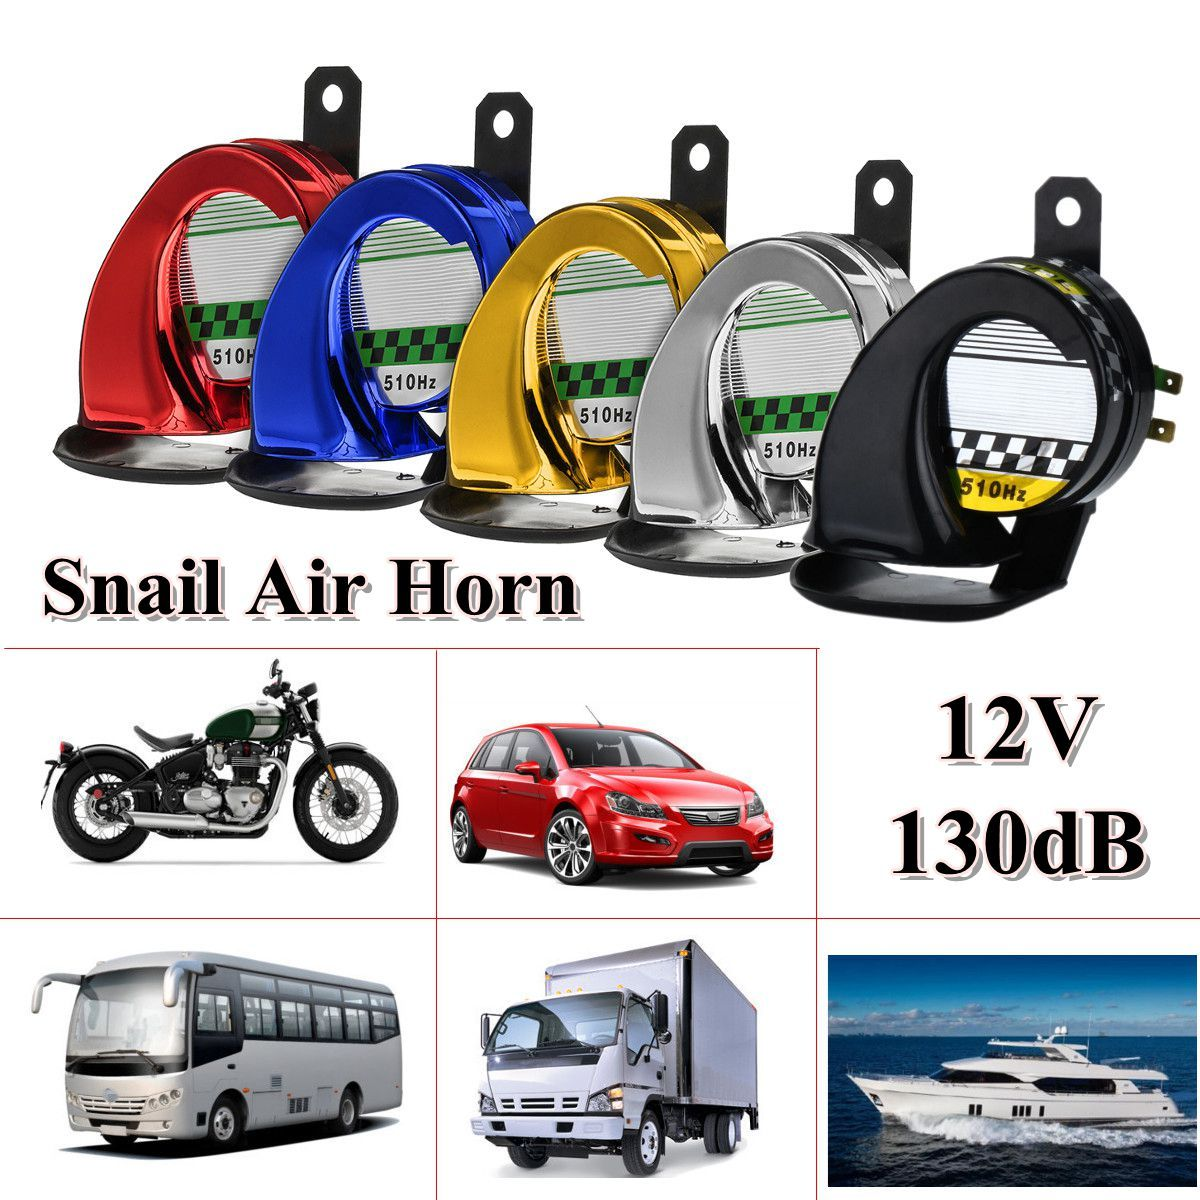 Universal 12V DC Waterproof Snail Air Motorcycle Horn Siren Loud 130dB for Truck Motorbike red gold blue silver black